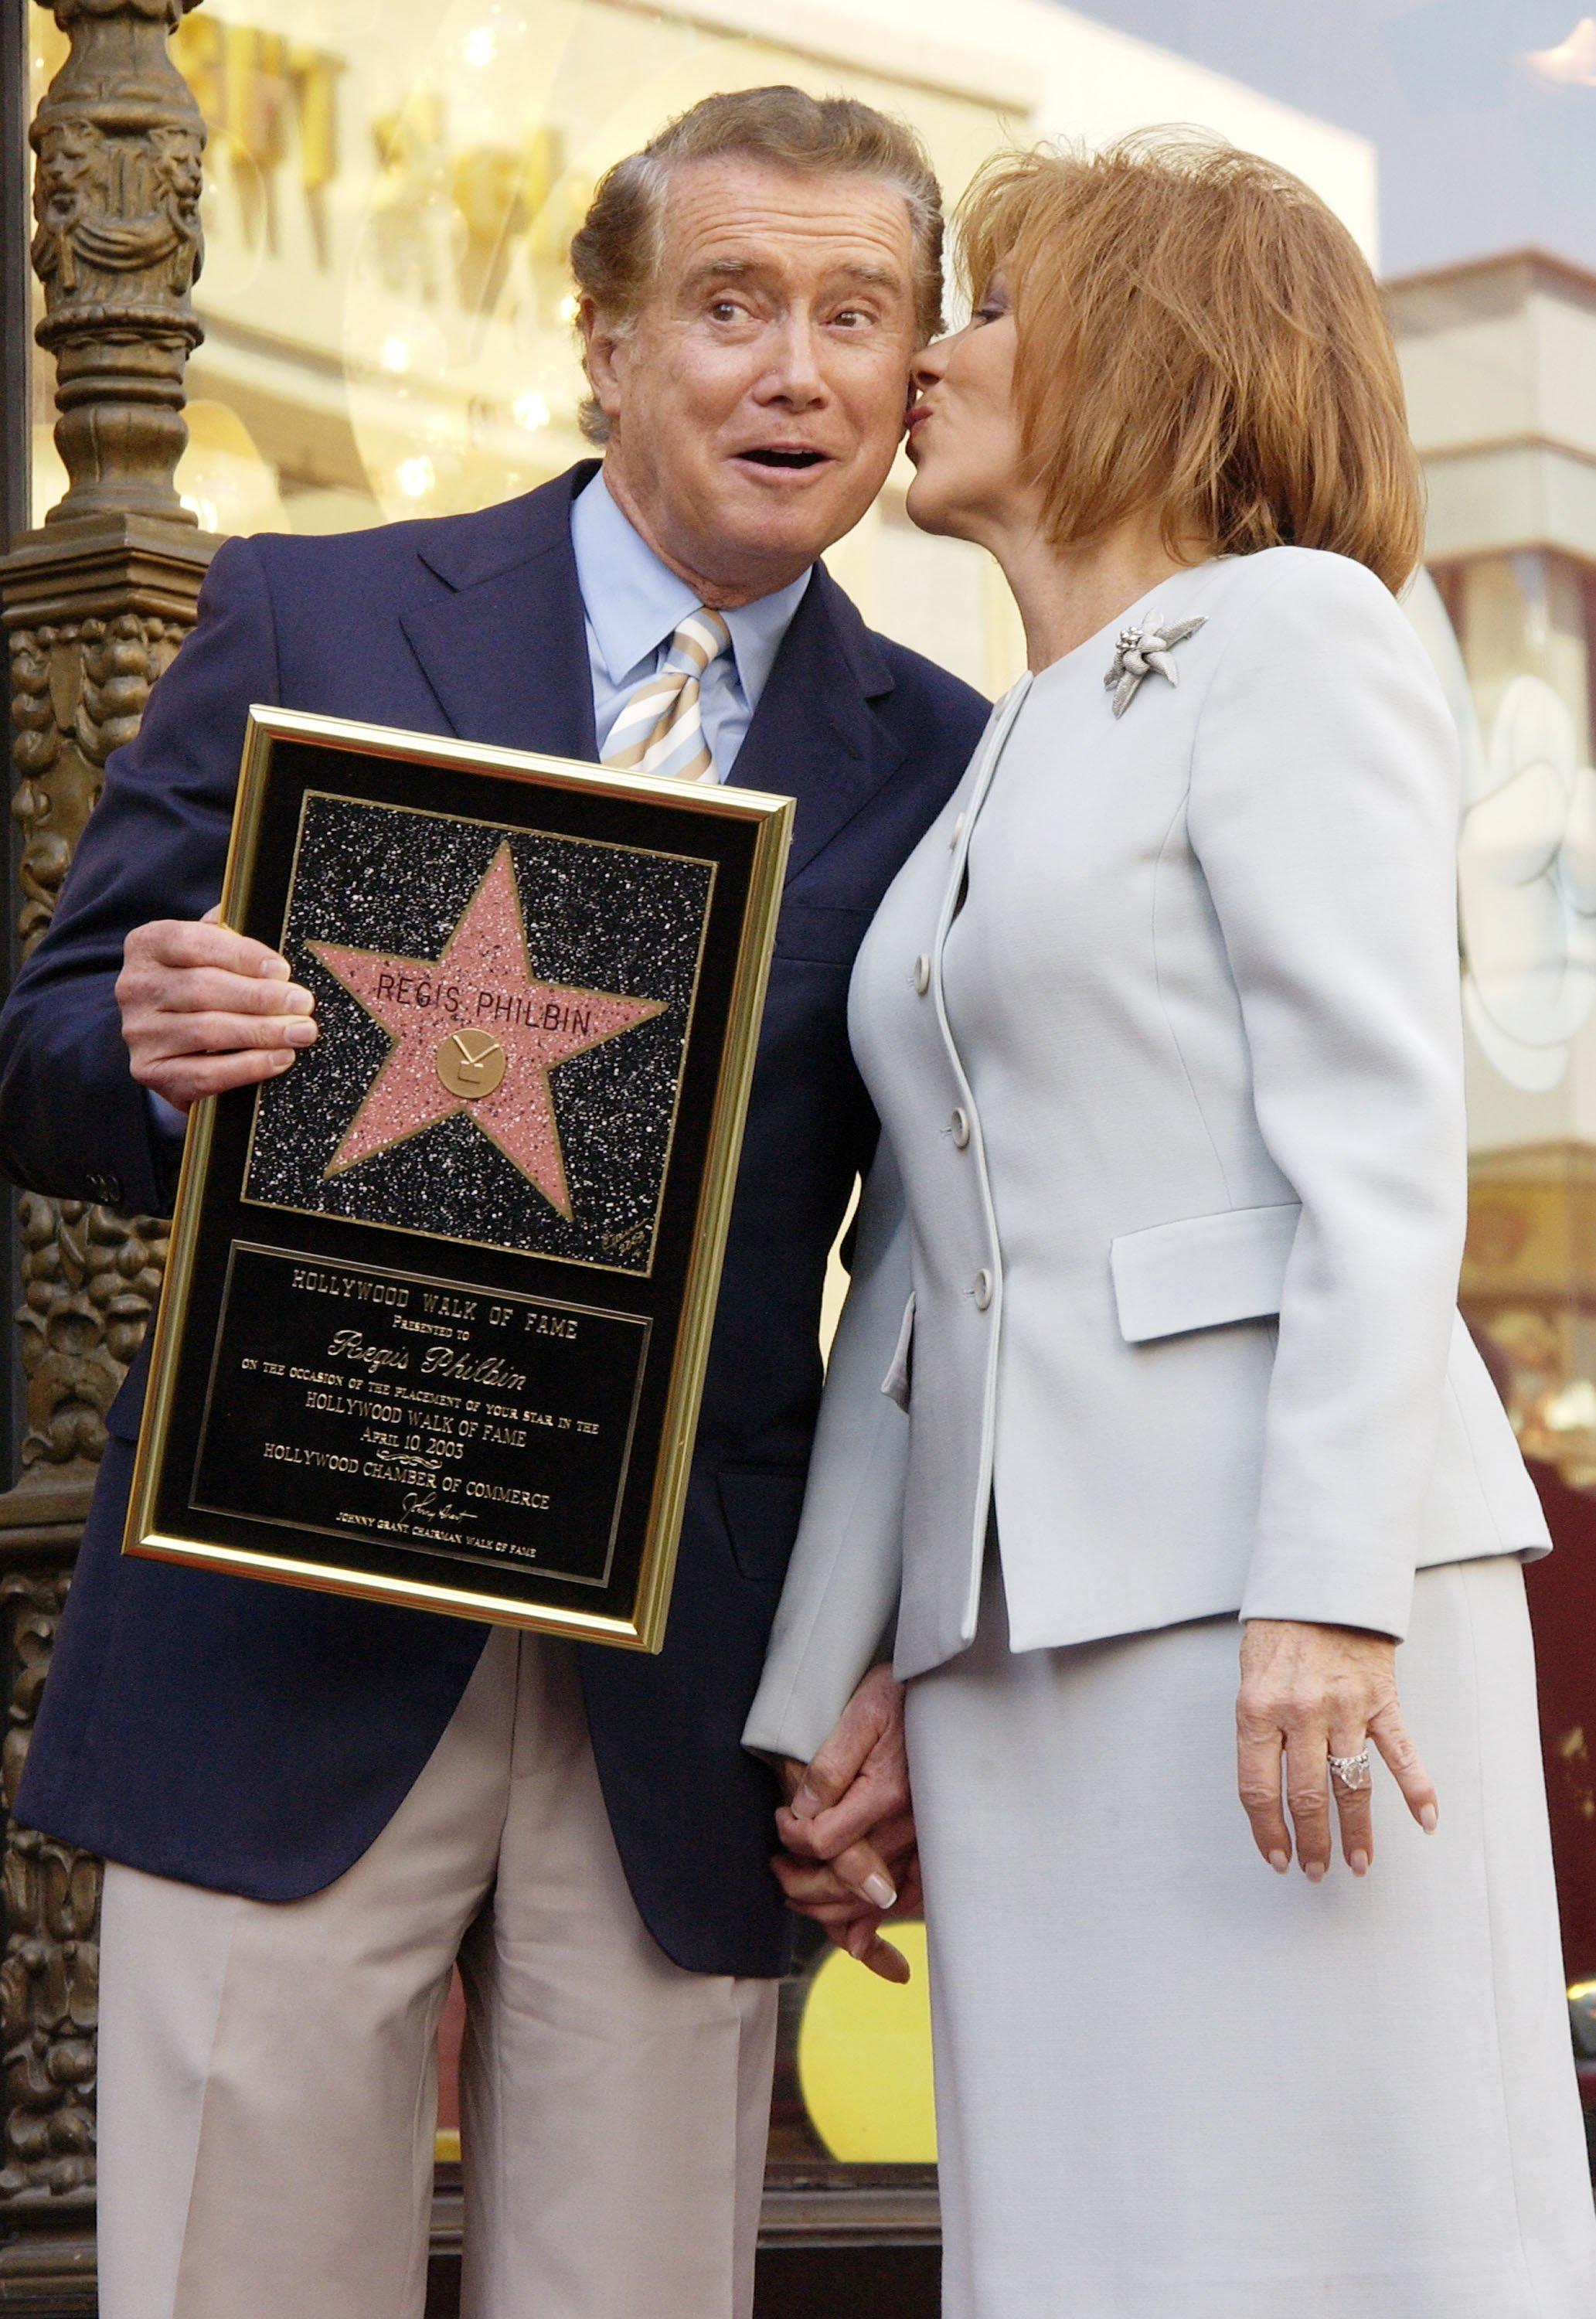 Regis and Joy Philbin on April 10, 2003 in Hollywood, California | Source: Getty Images